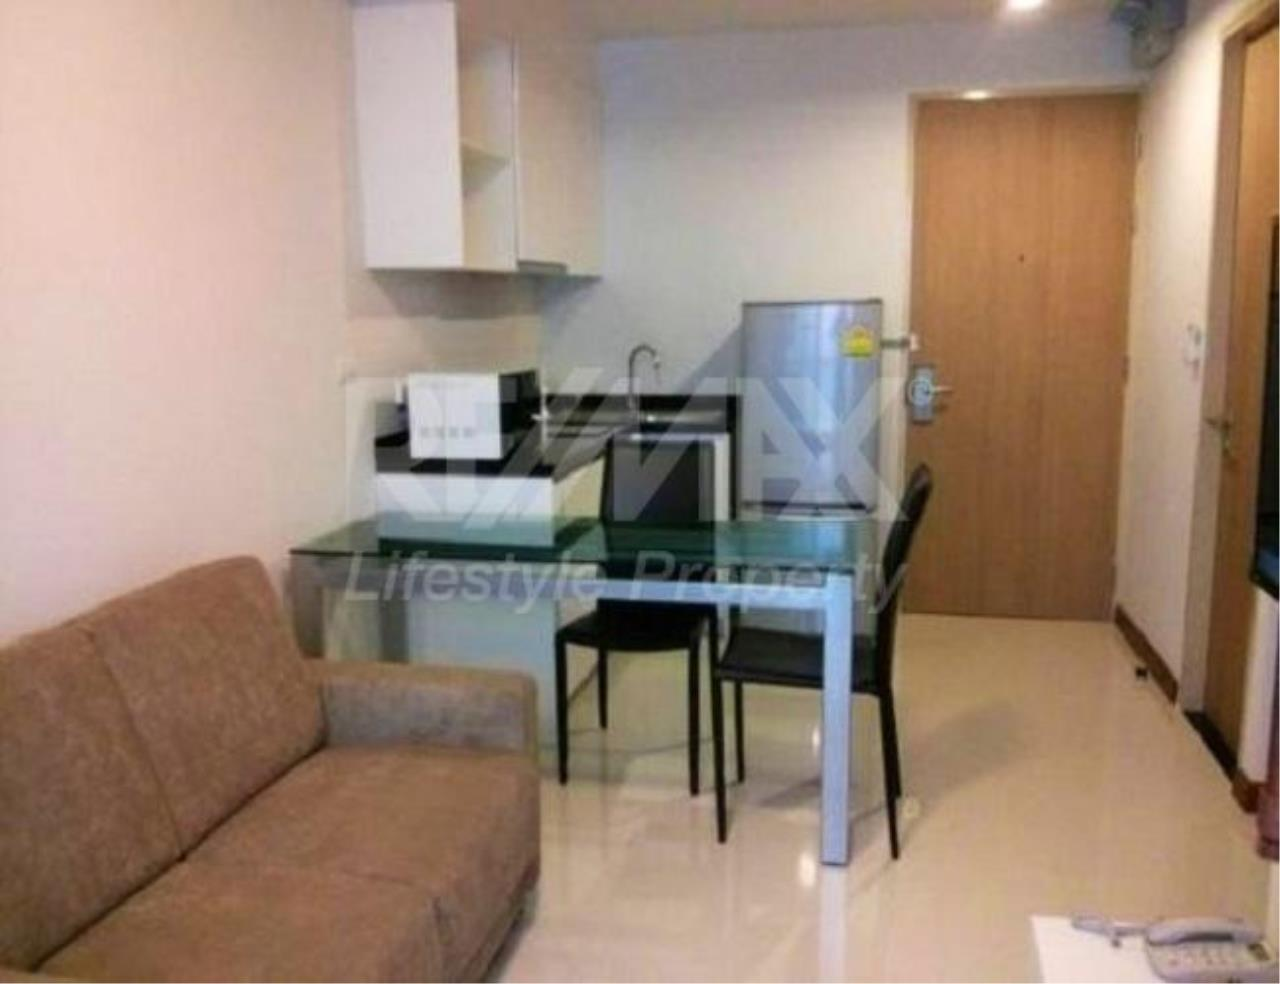 RE/MAX LifeStyle Property Agency's Le Cote Thonglor 8 11